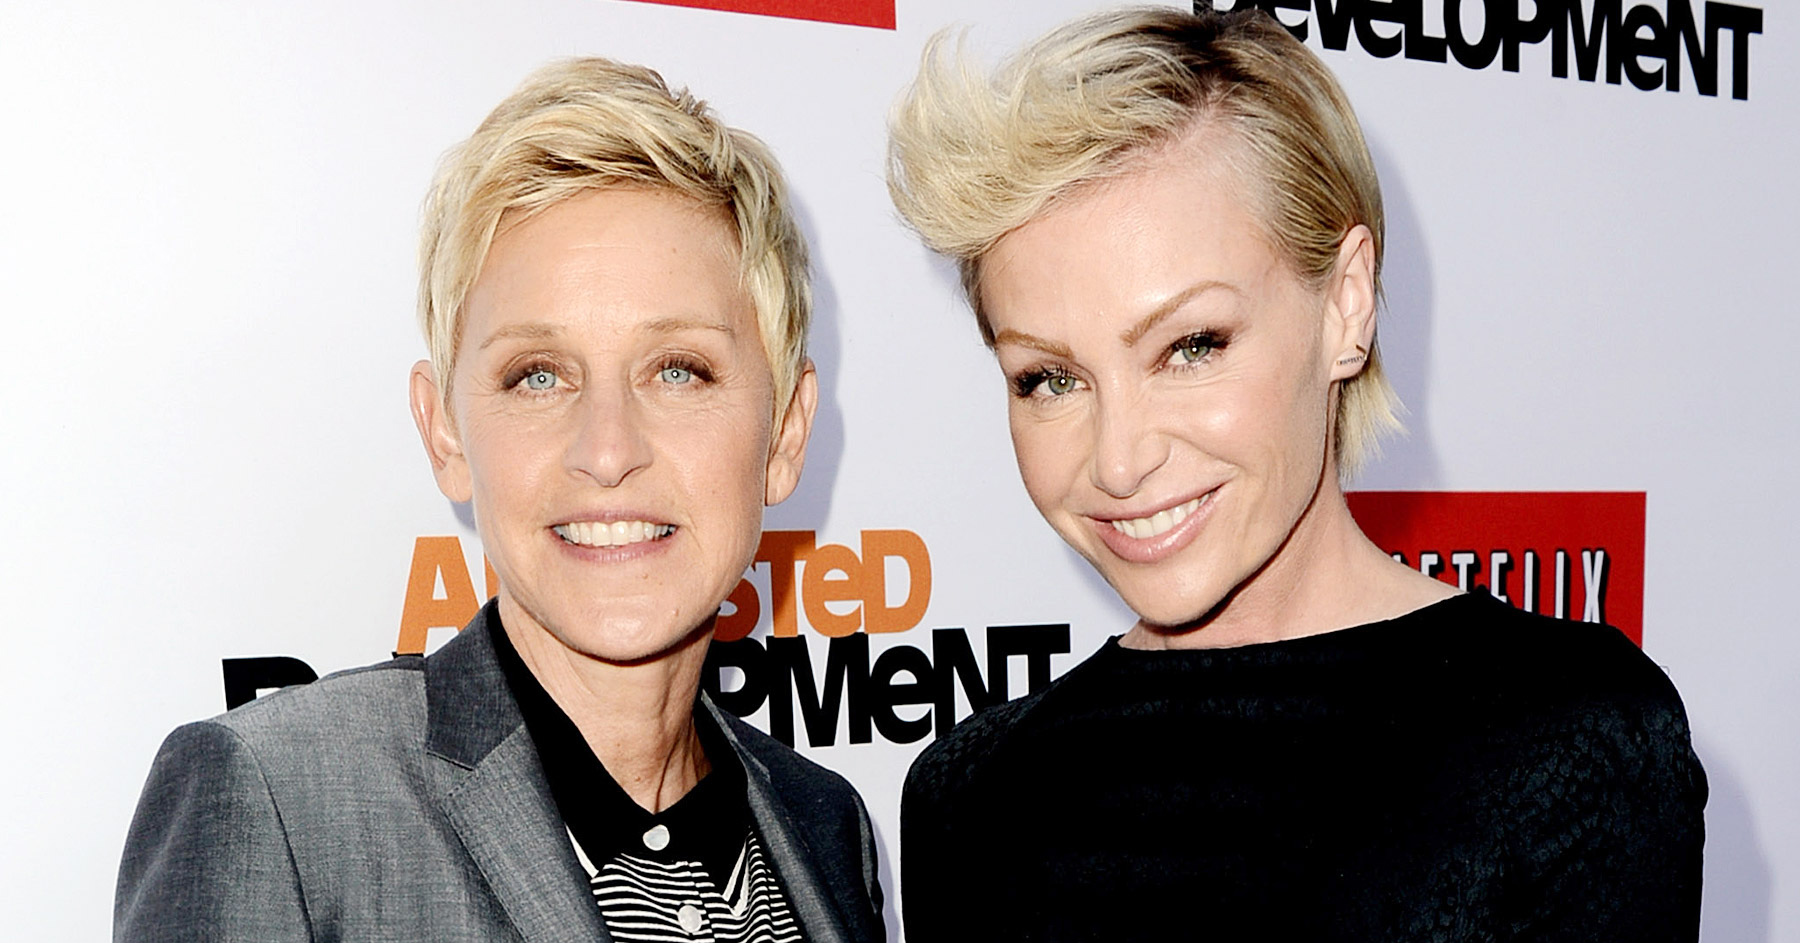 portia single lesbian women Portia de rossi, born amanda lee she was fearful of being exposed as a lesbian de rossi and gregorini broke up in late 2004 because de rossi began dating.